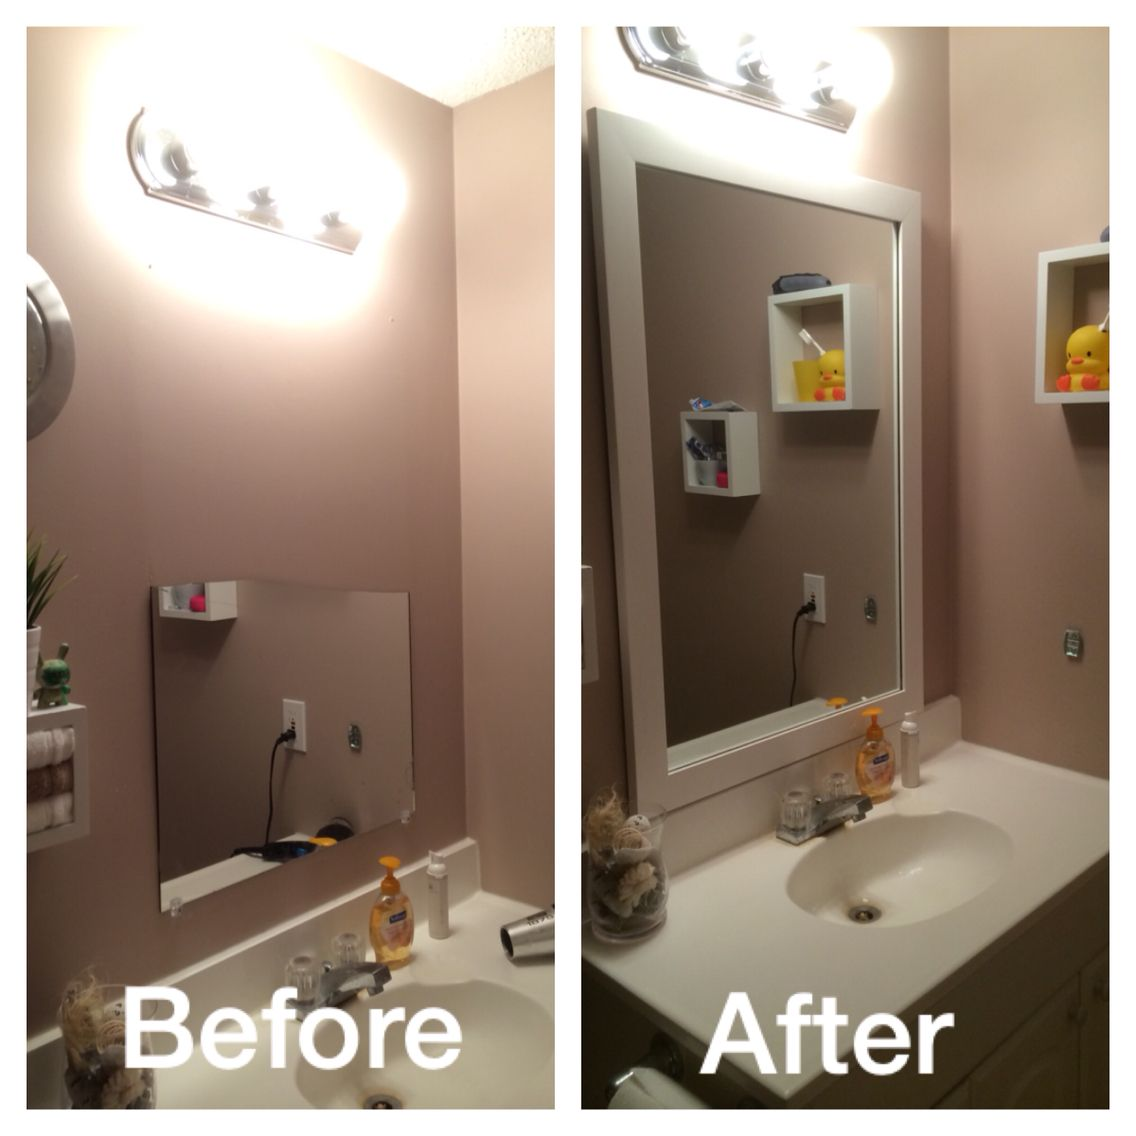 Simple & Luxurious Upgrade to Bathroom Mirror! My previous mirror cracked  in half :(